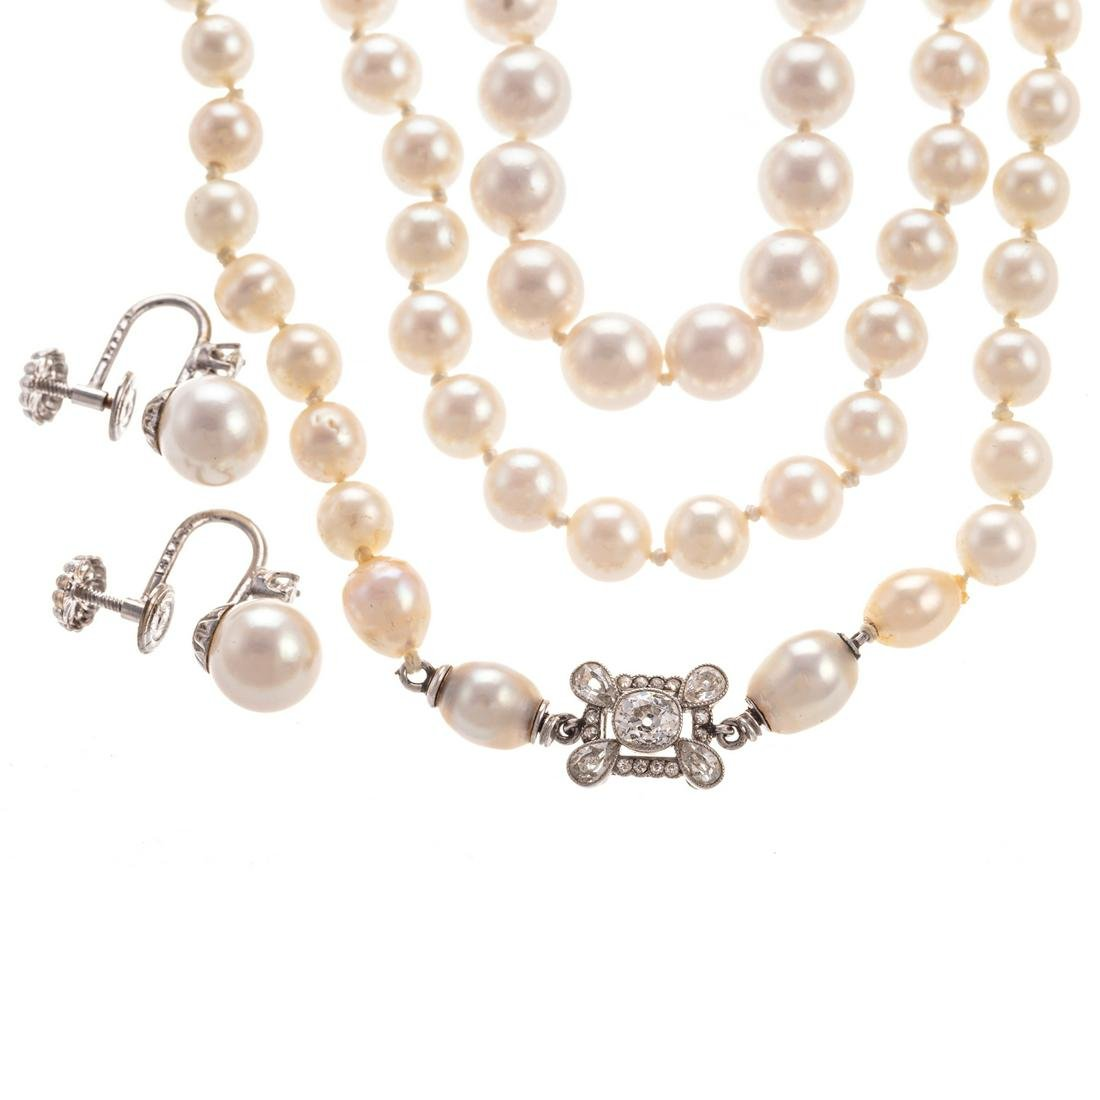 A Collection of Pearl Jewelry in 14K